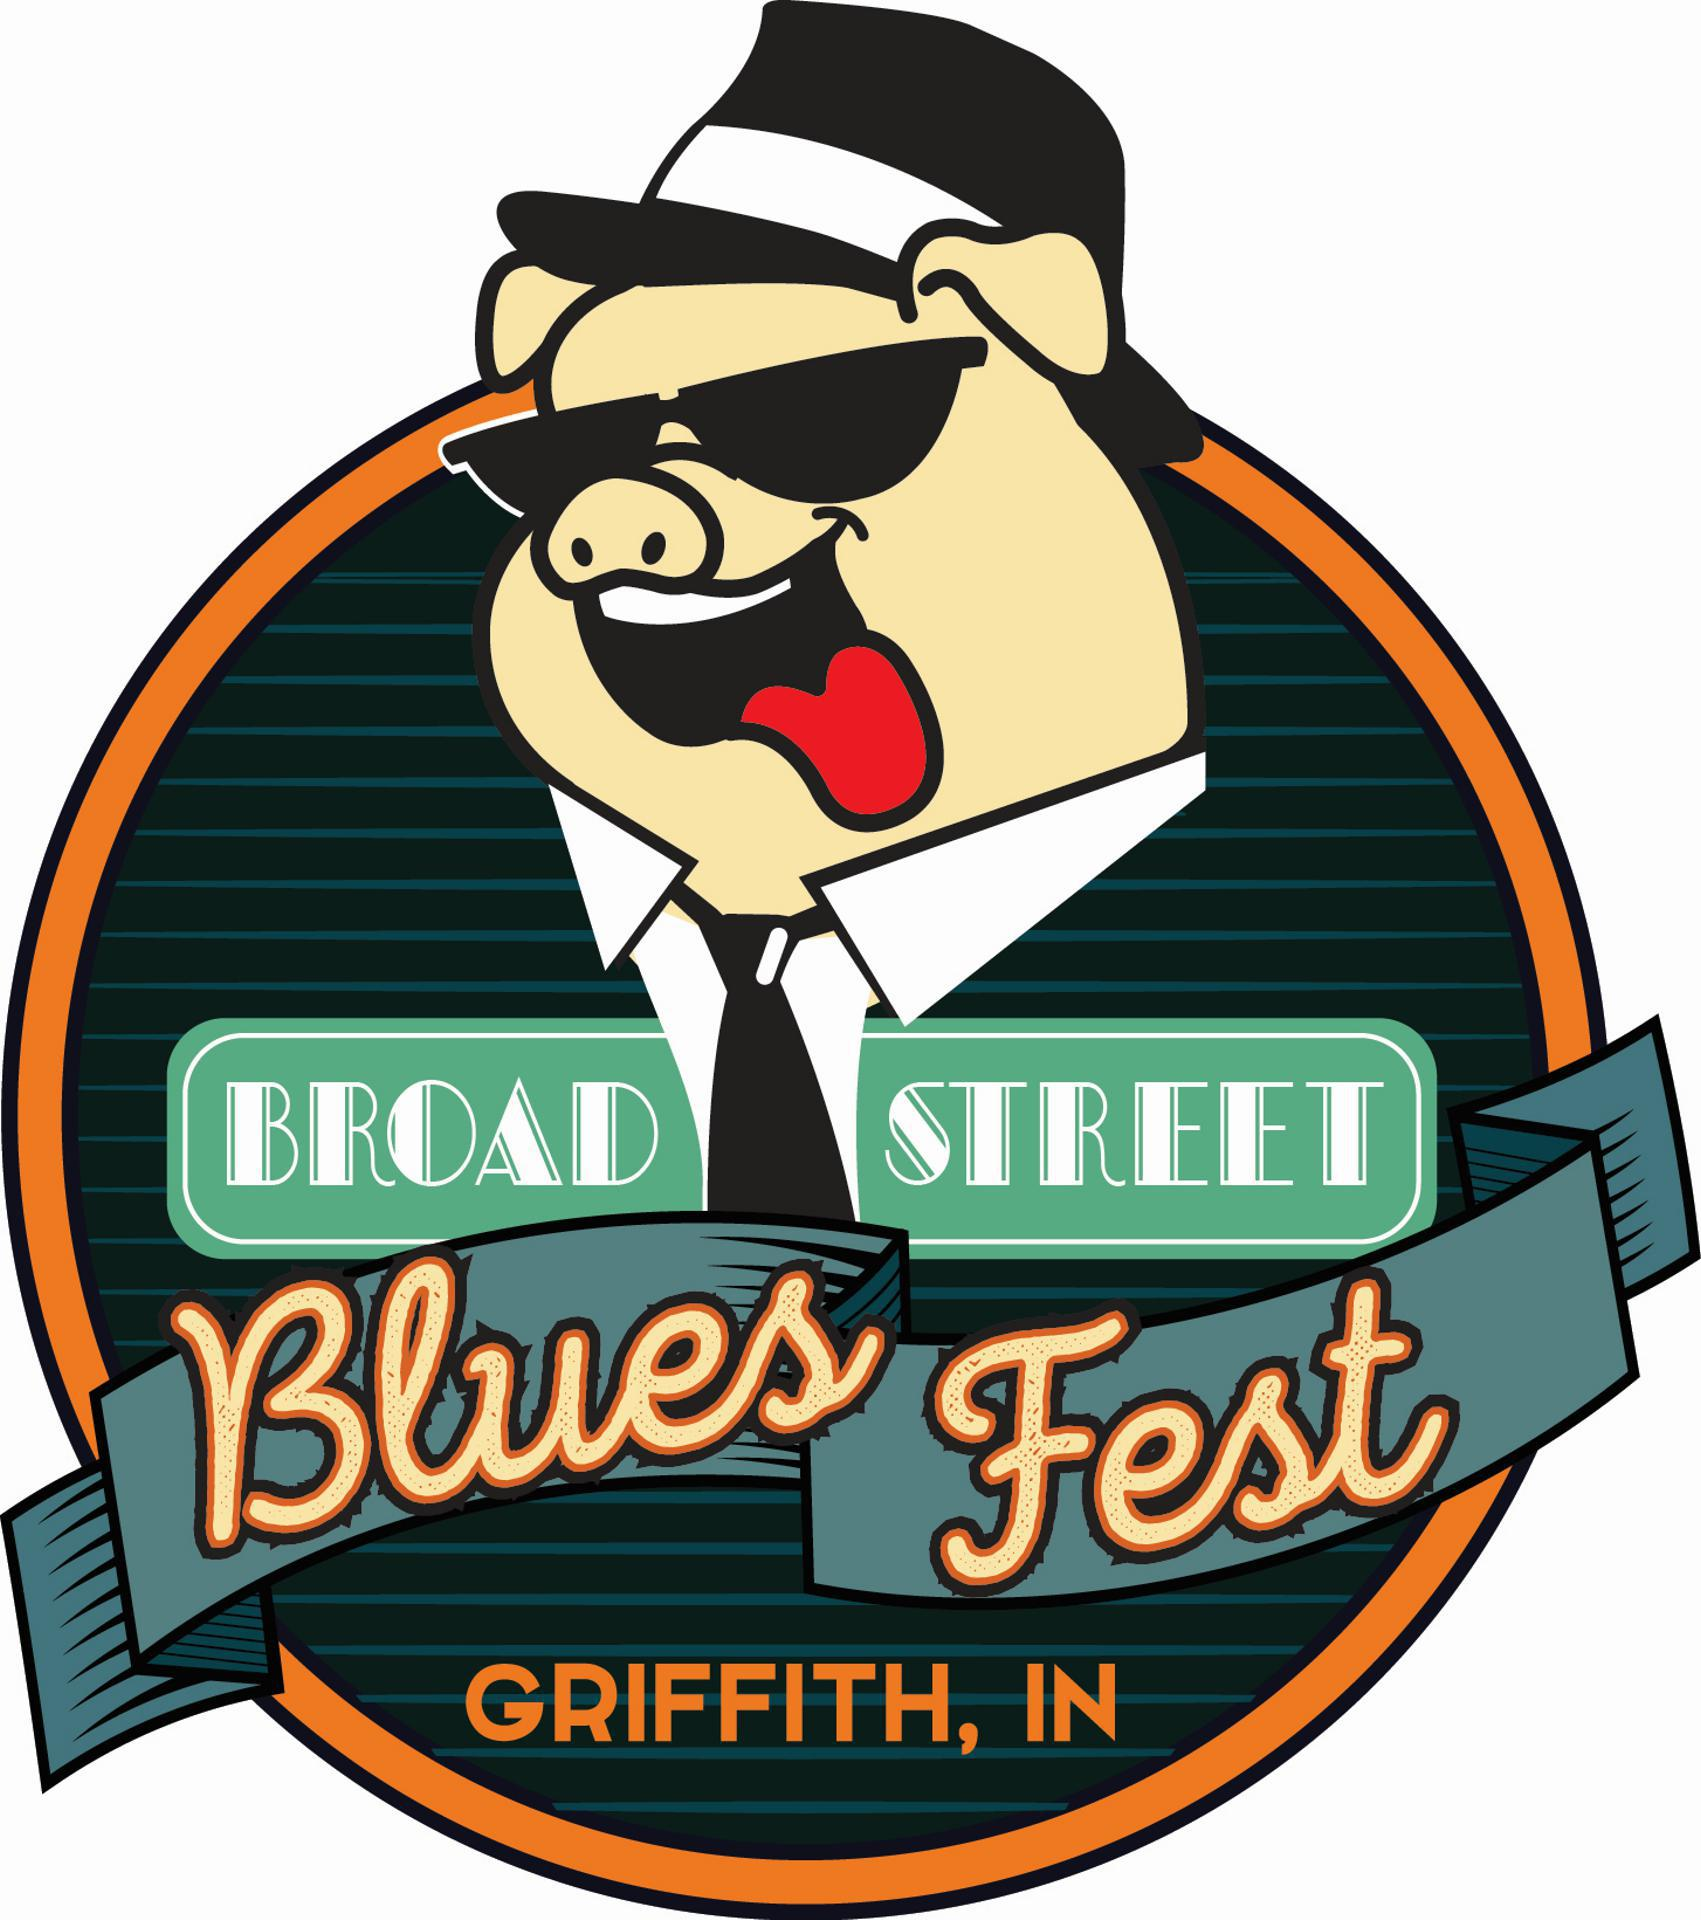 broad street blues fest griffith indiana